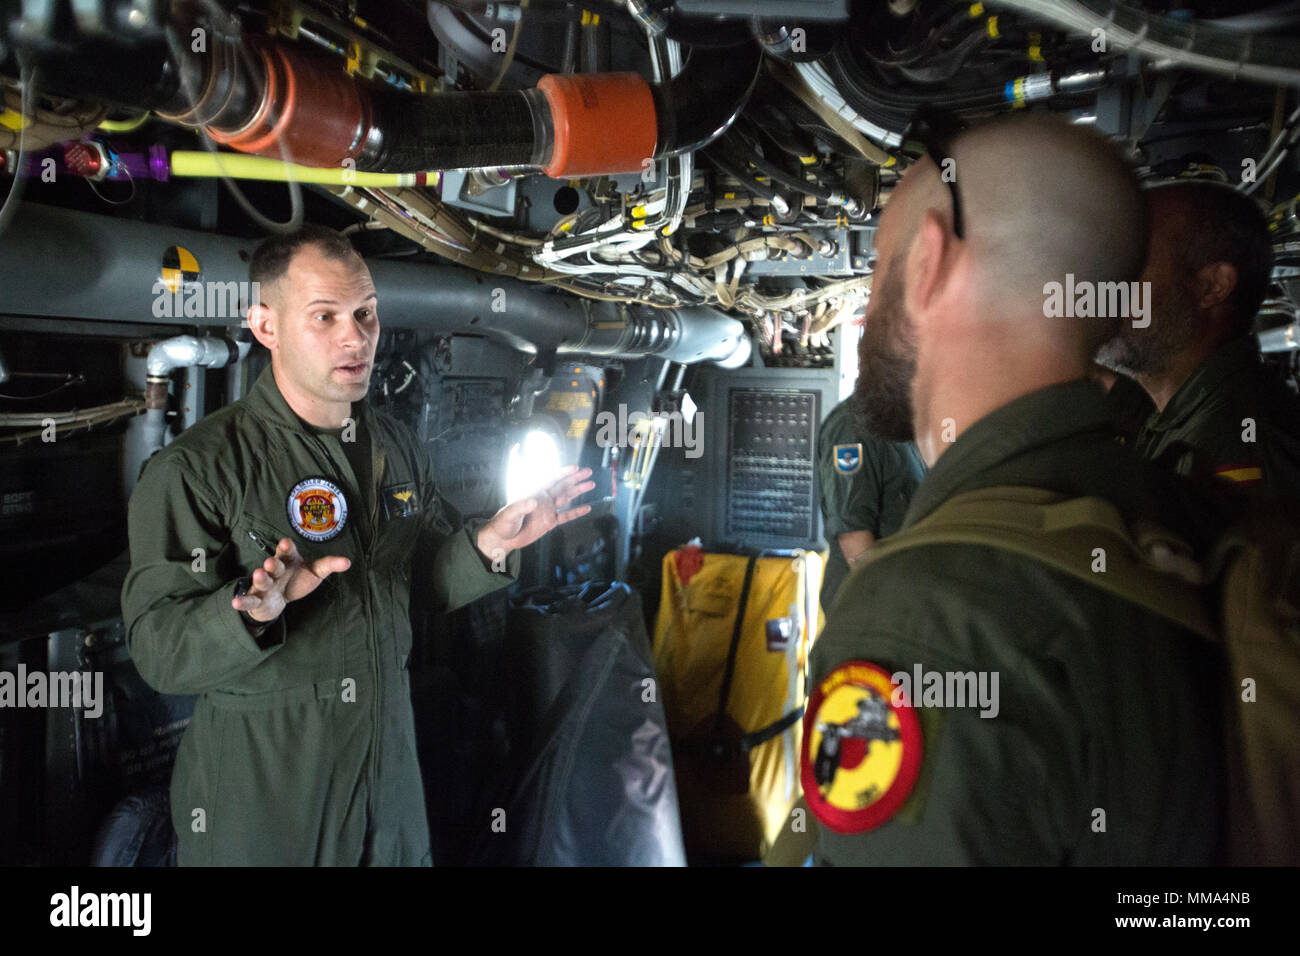 Captain Jonathan D. Hoy, an MV-22B Osprey pilot with Special Purpose Marine Air-Ground Task force-Crisis Response-Africa aviation combat element, speaks with members of the Spanish military about the Osprey's capabilities during the Spanish military's airshow at Naval Station Rota, Spain, Sept. 15, 2017. The airshow commemorated the 100-year anniversary of Spanish aviation. (U.S. Marine Corps Photo by SSgt. Kenneth K. Trotter Jr. - Stock Image